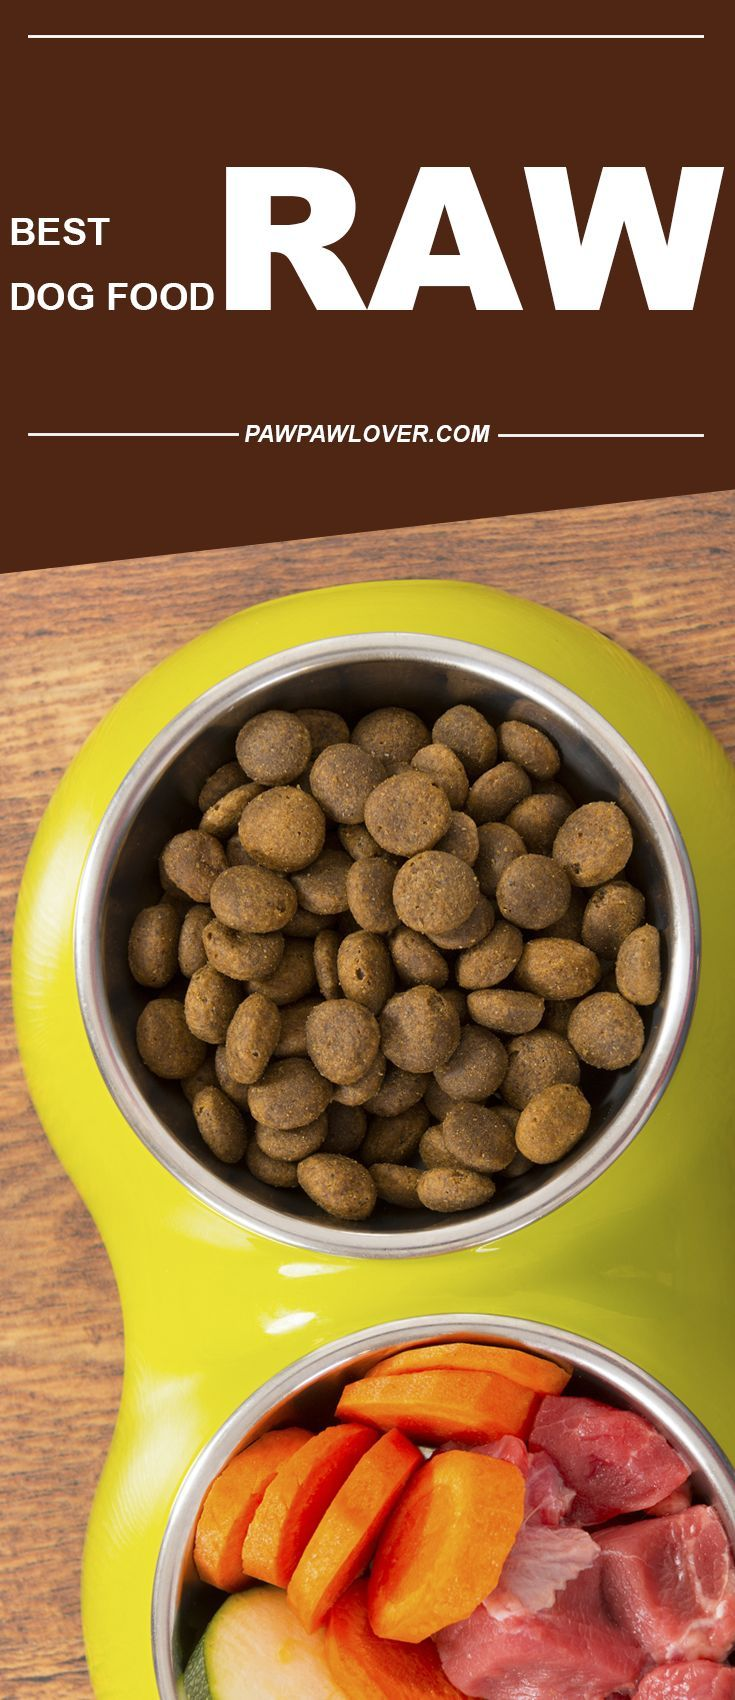 Best Raw Dog Food Brand Frozen Dehydrated 2018 Reviews